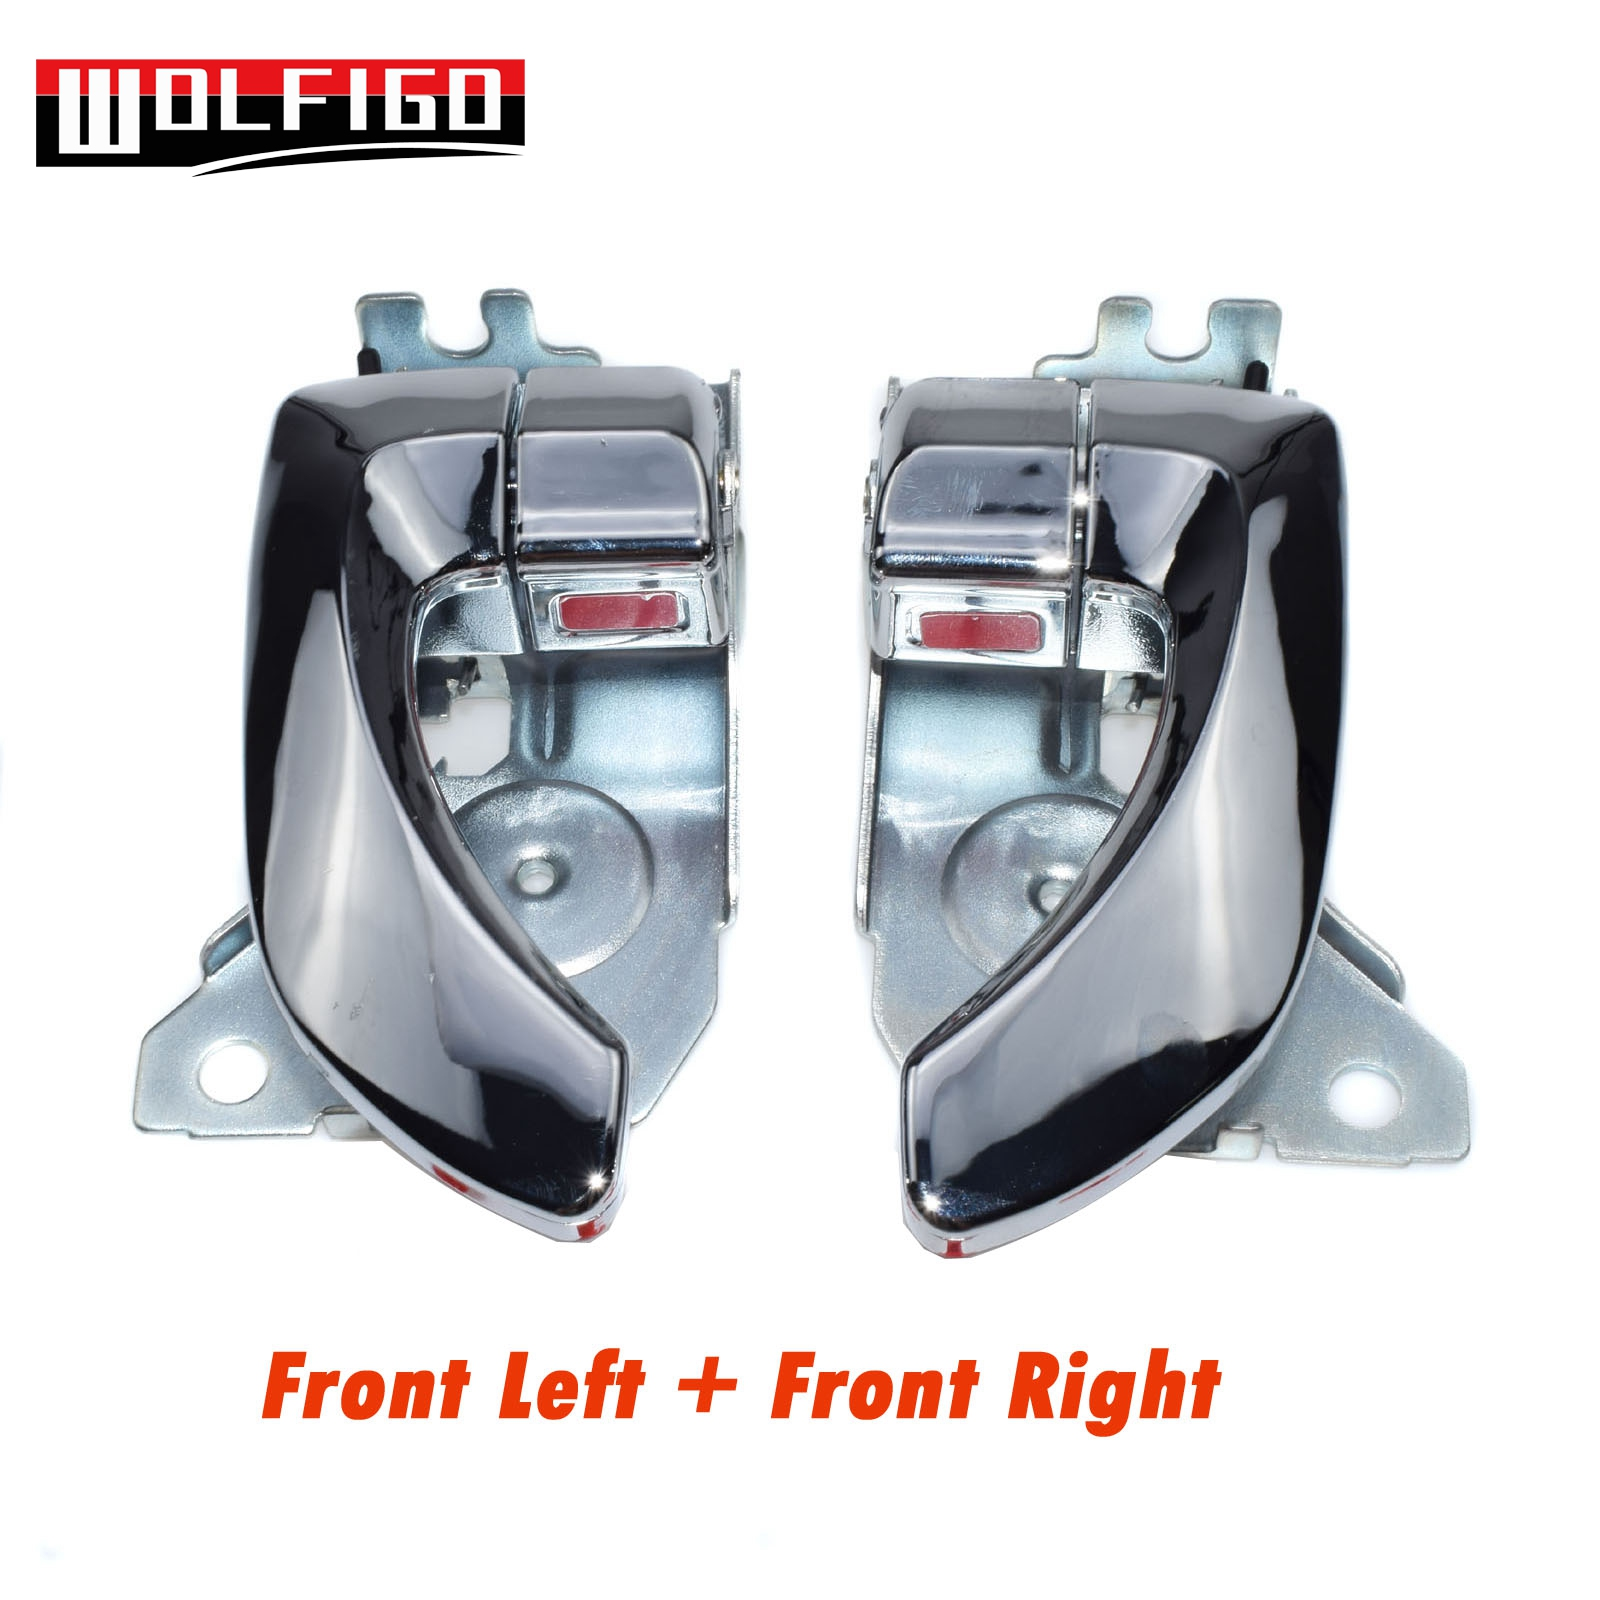 New Pair Inside Door Handles Front Left Right Chrome for Kia 2003-2009 Sorento